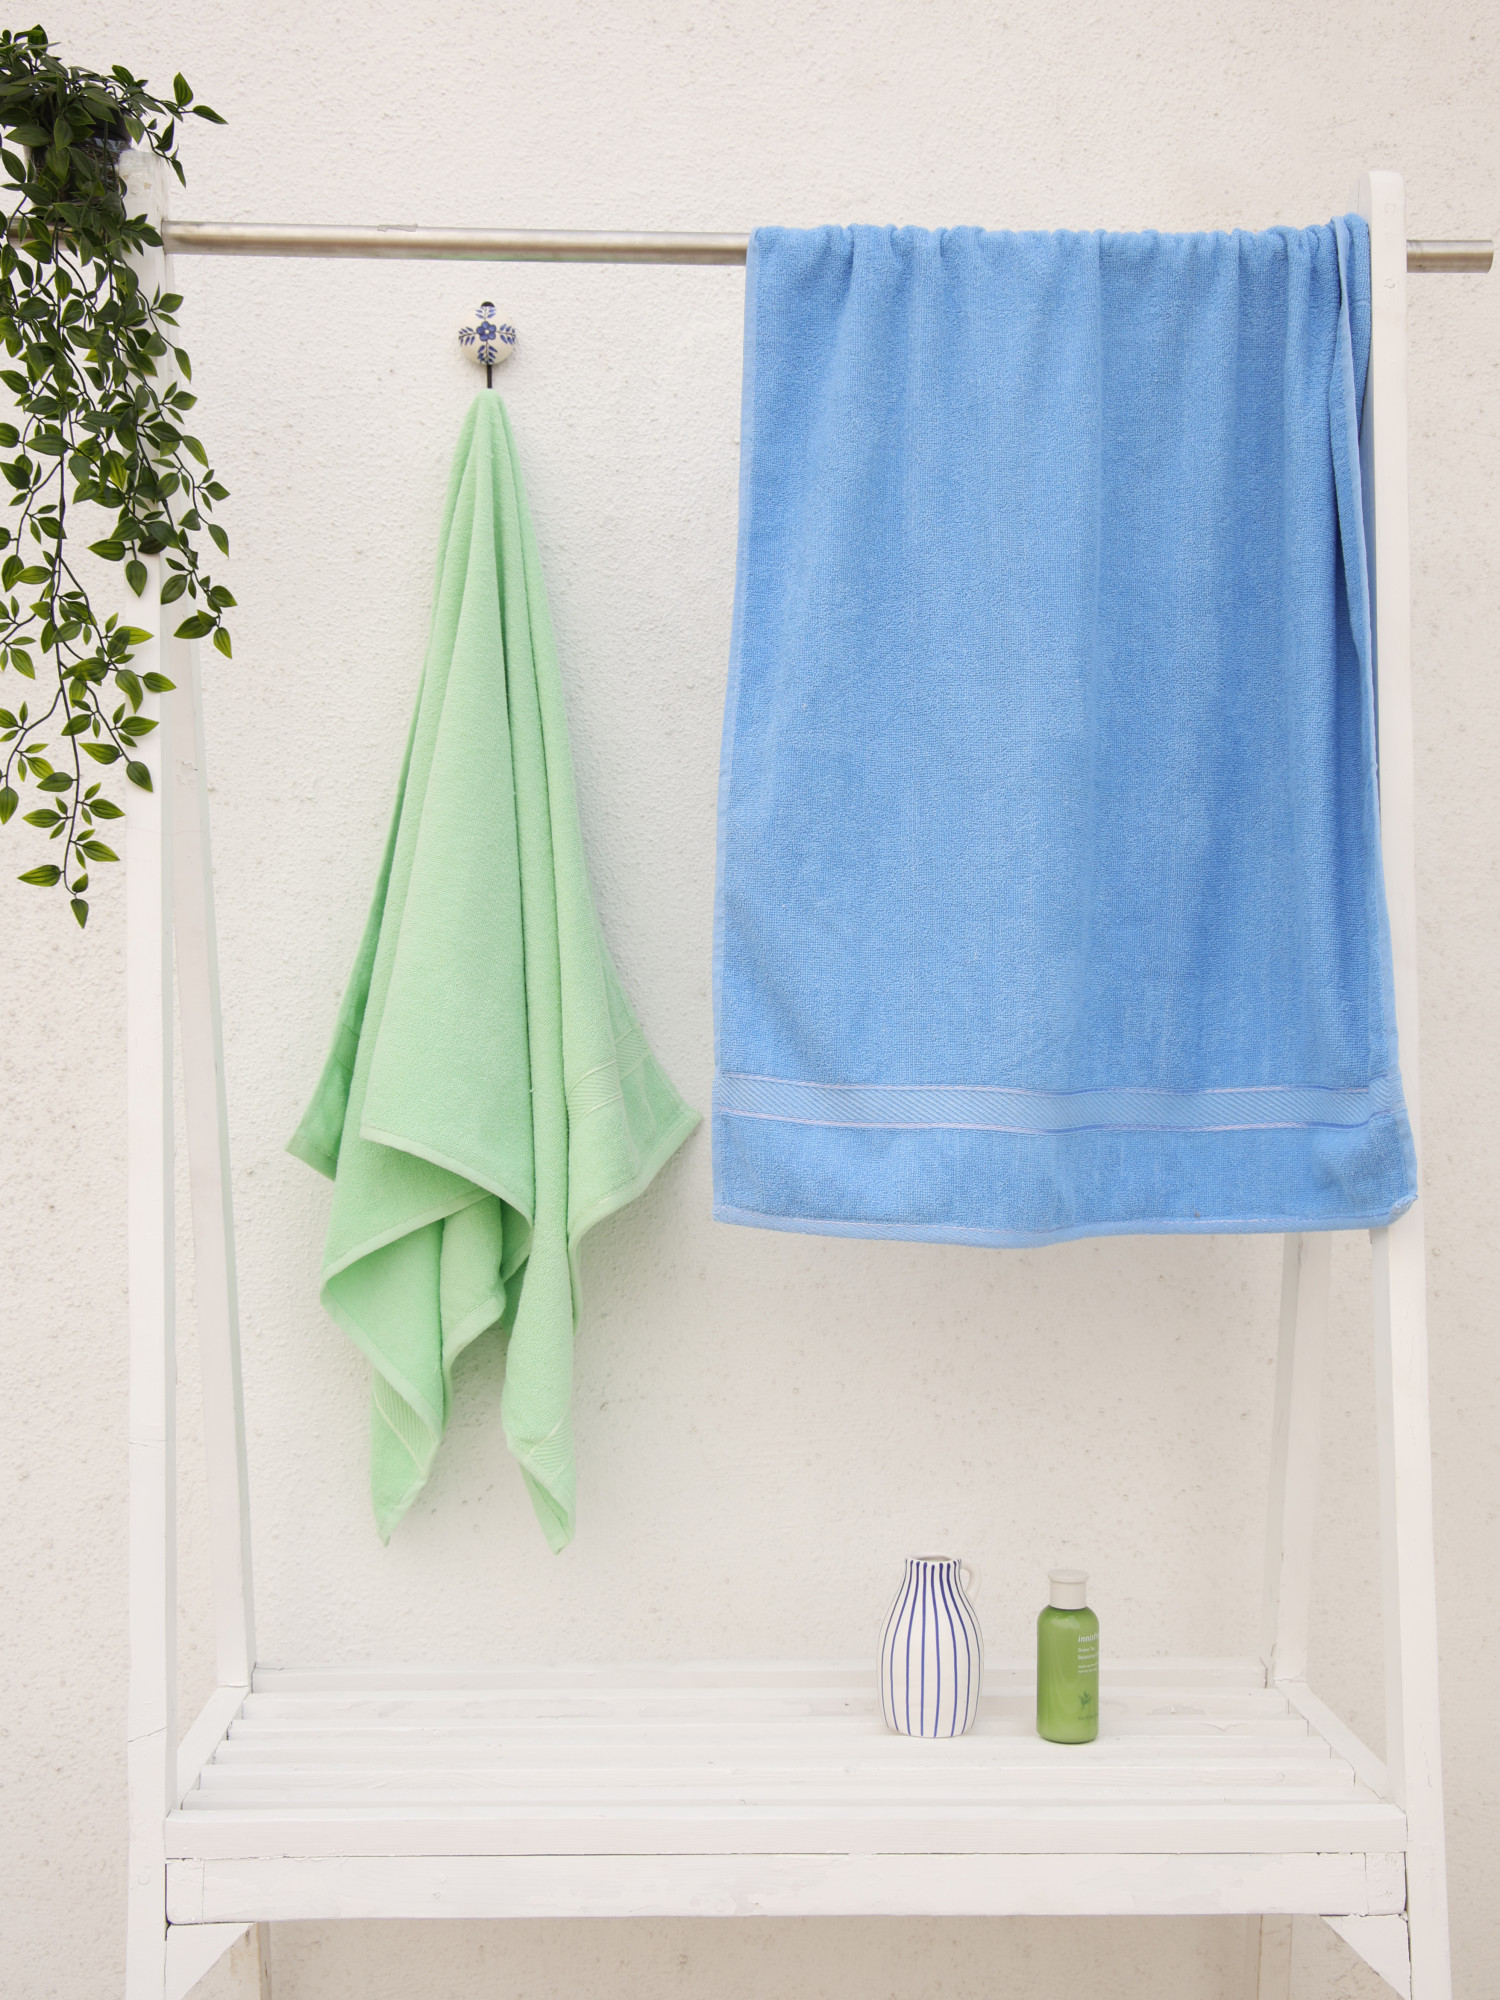 Etereo Couple Towels